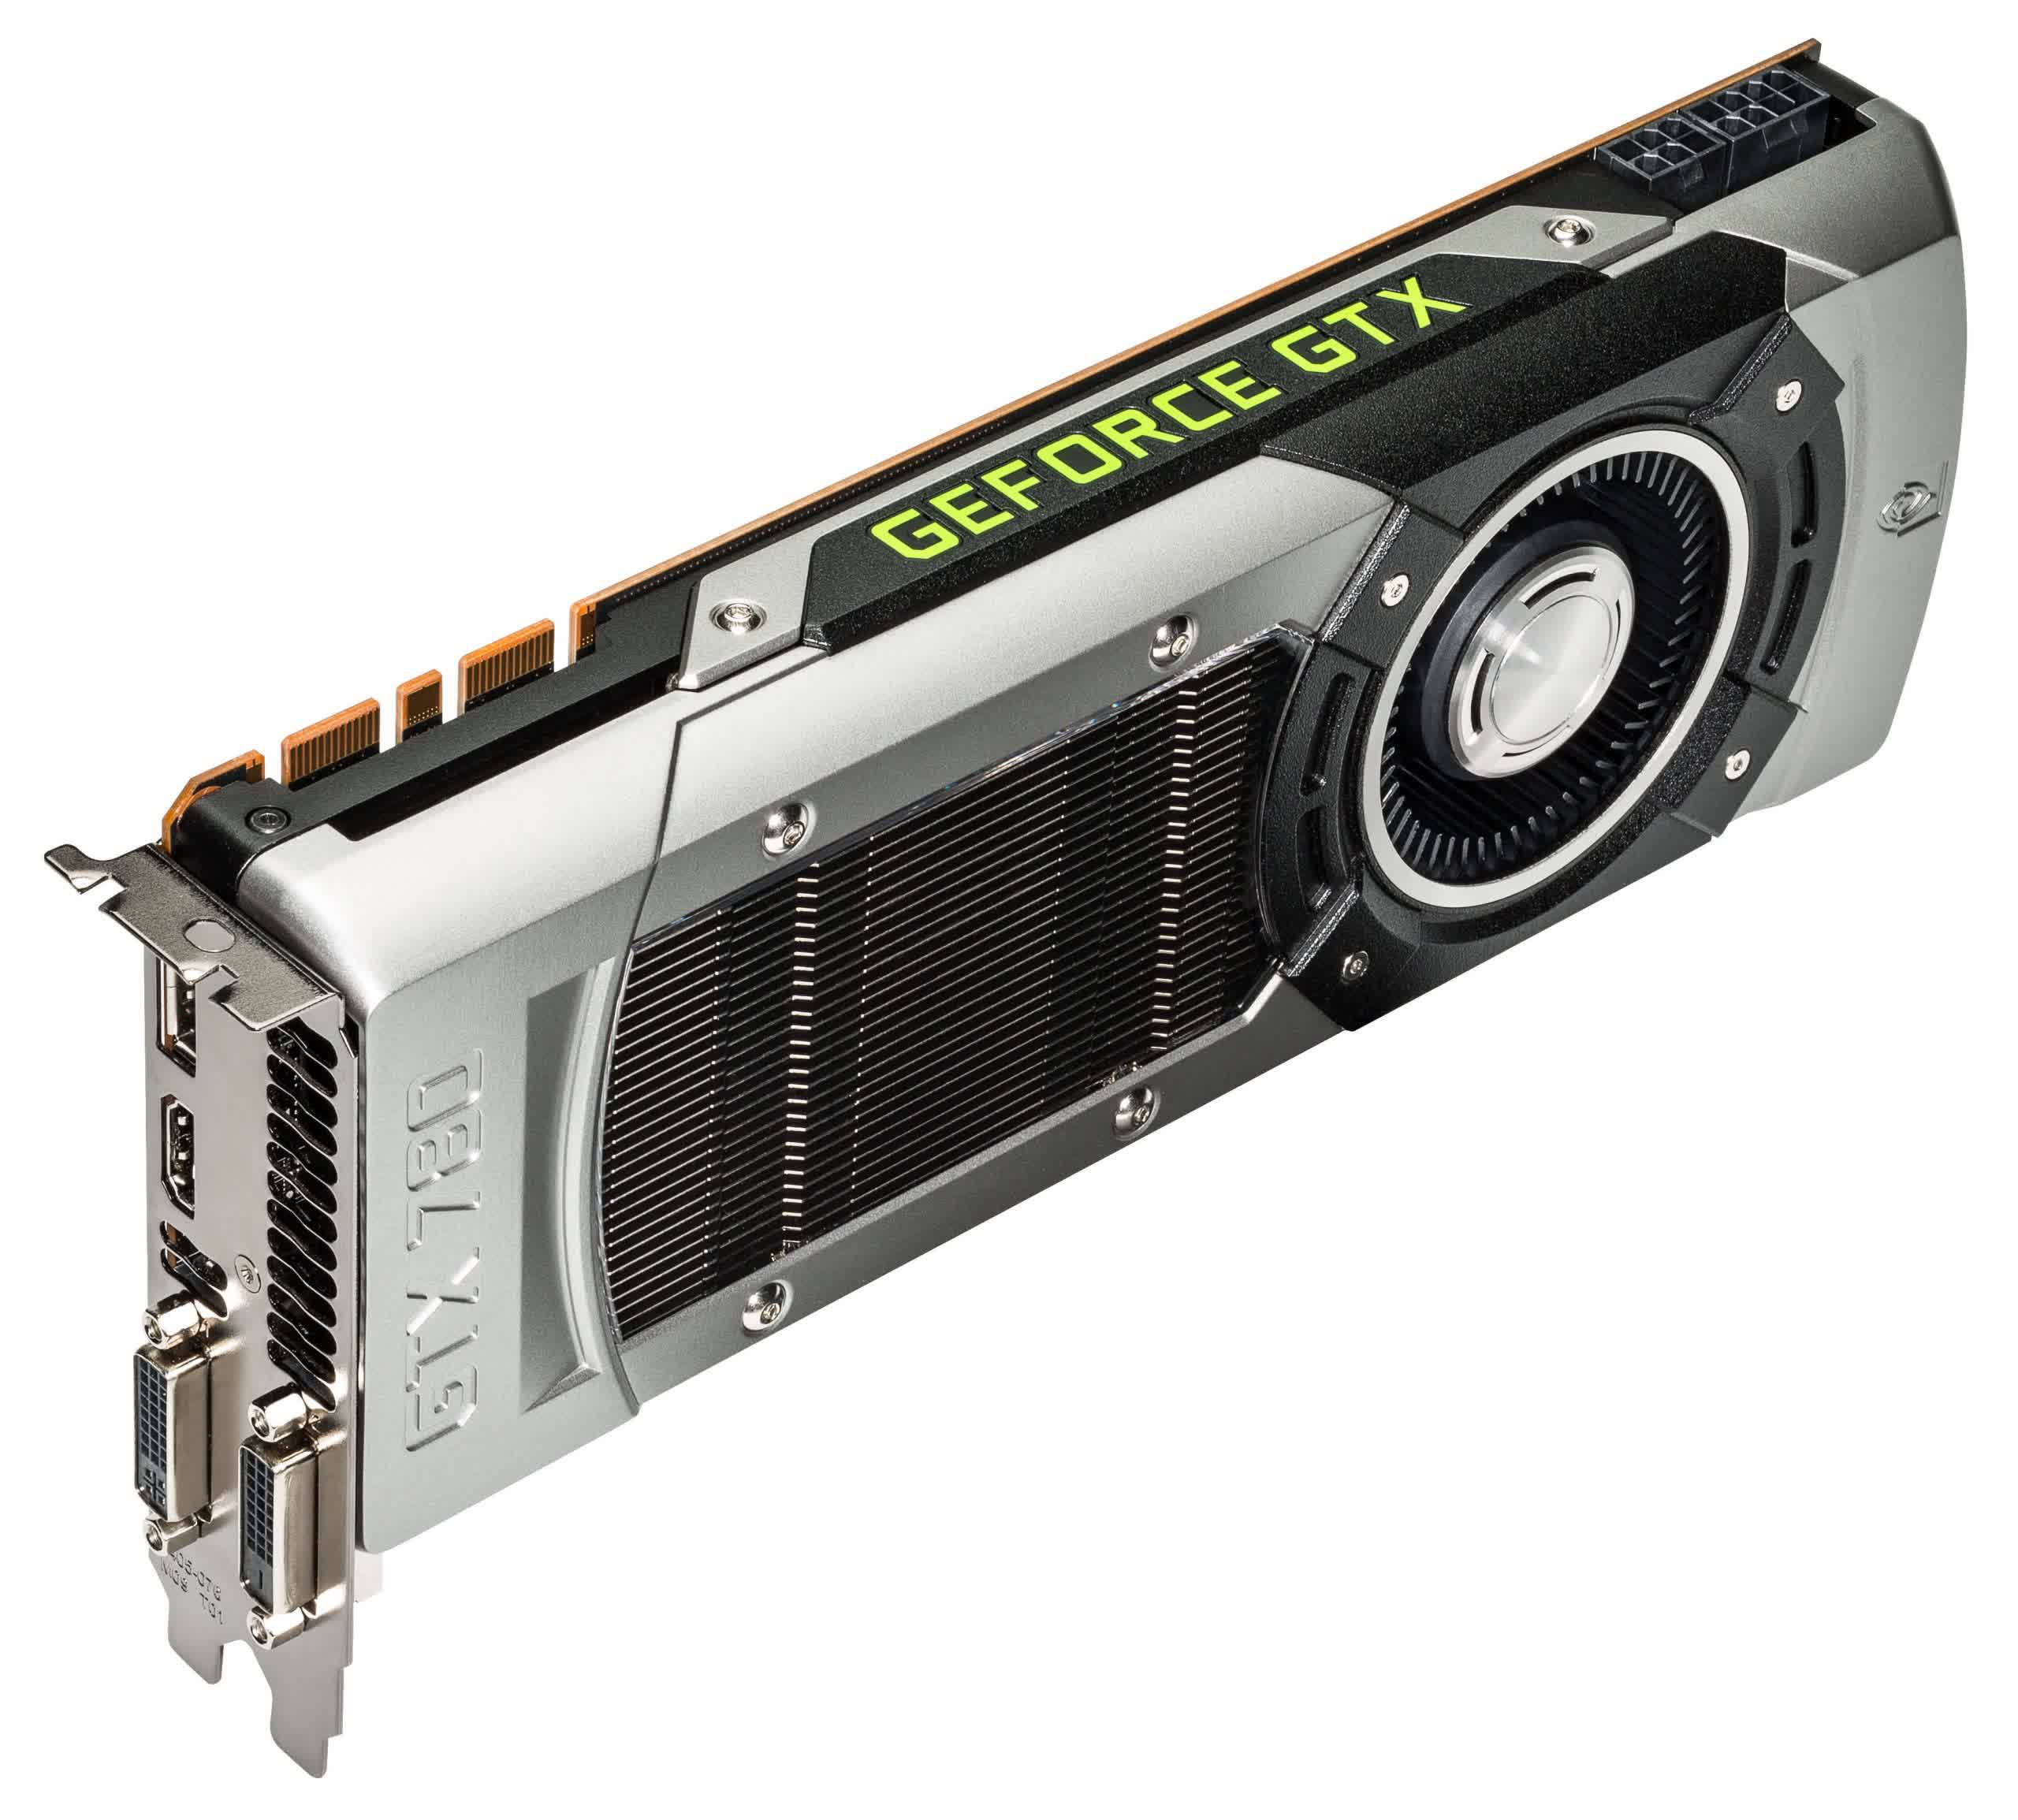 Nvidia is preparing to end driver support for Kepler GPUs